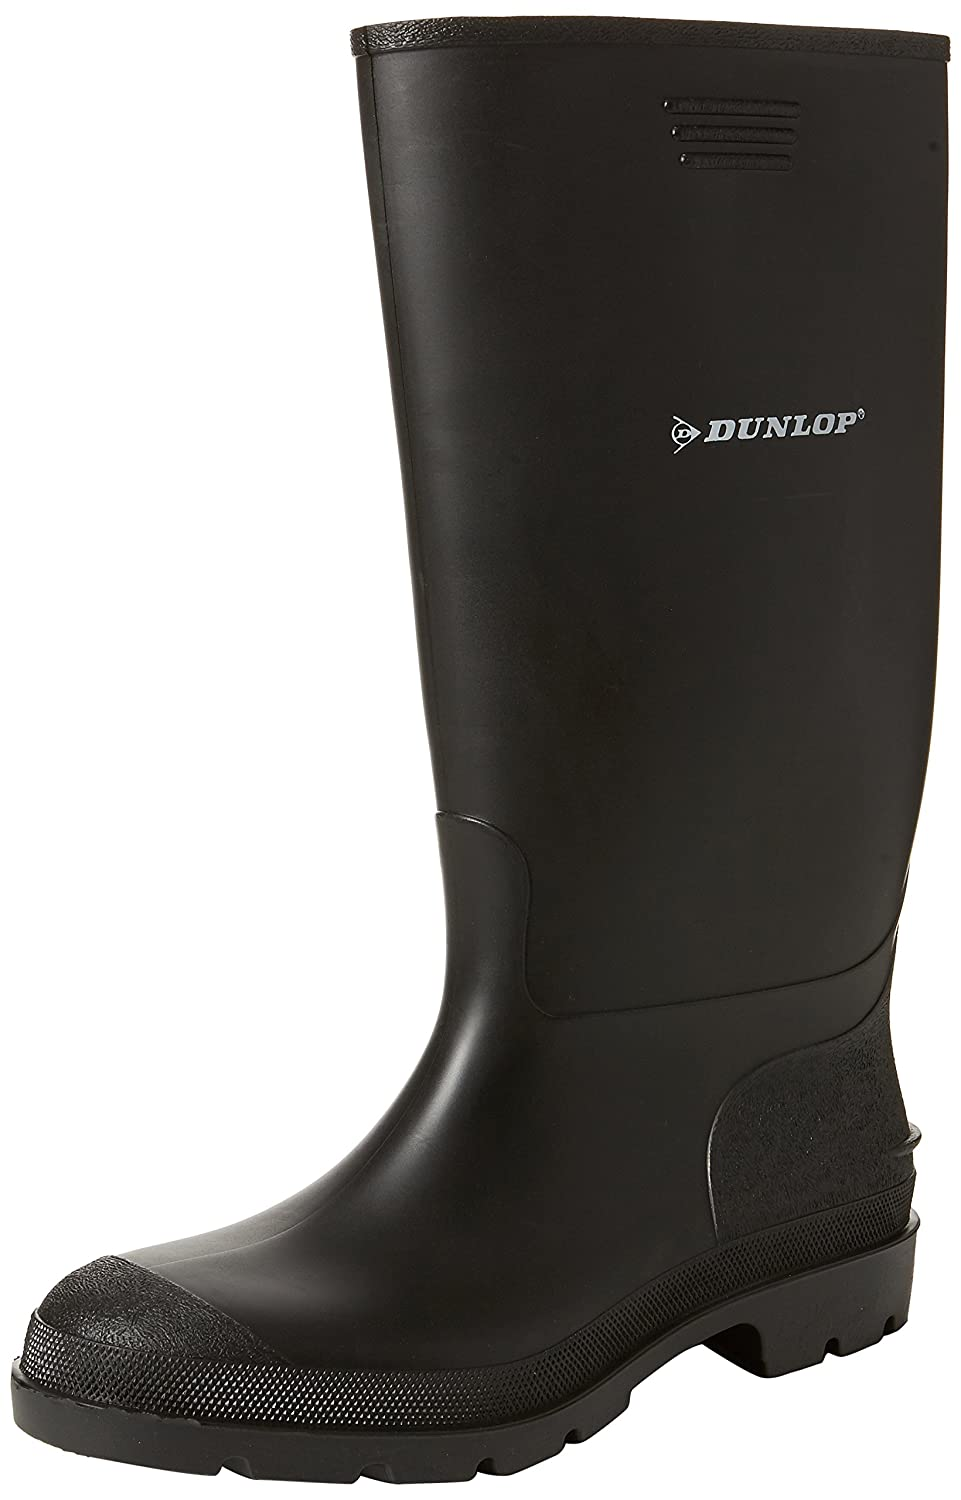 Dunlop Dunlop Pricemastor - Bottes B001949G88 - - Homme Noir 75224f5 - fast-weightloss-diet.space